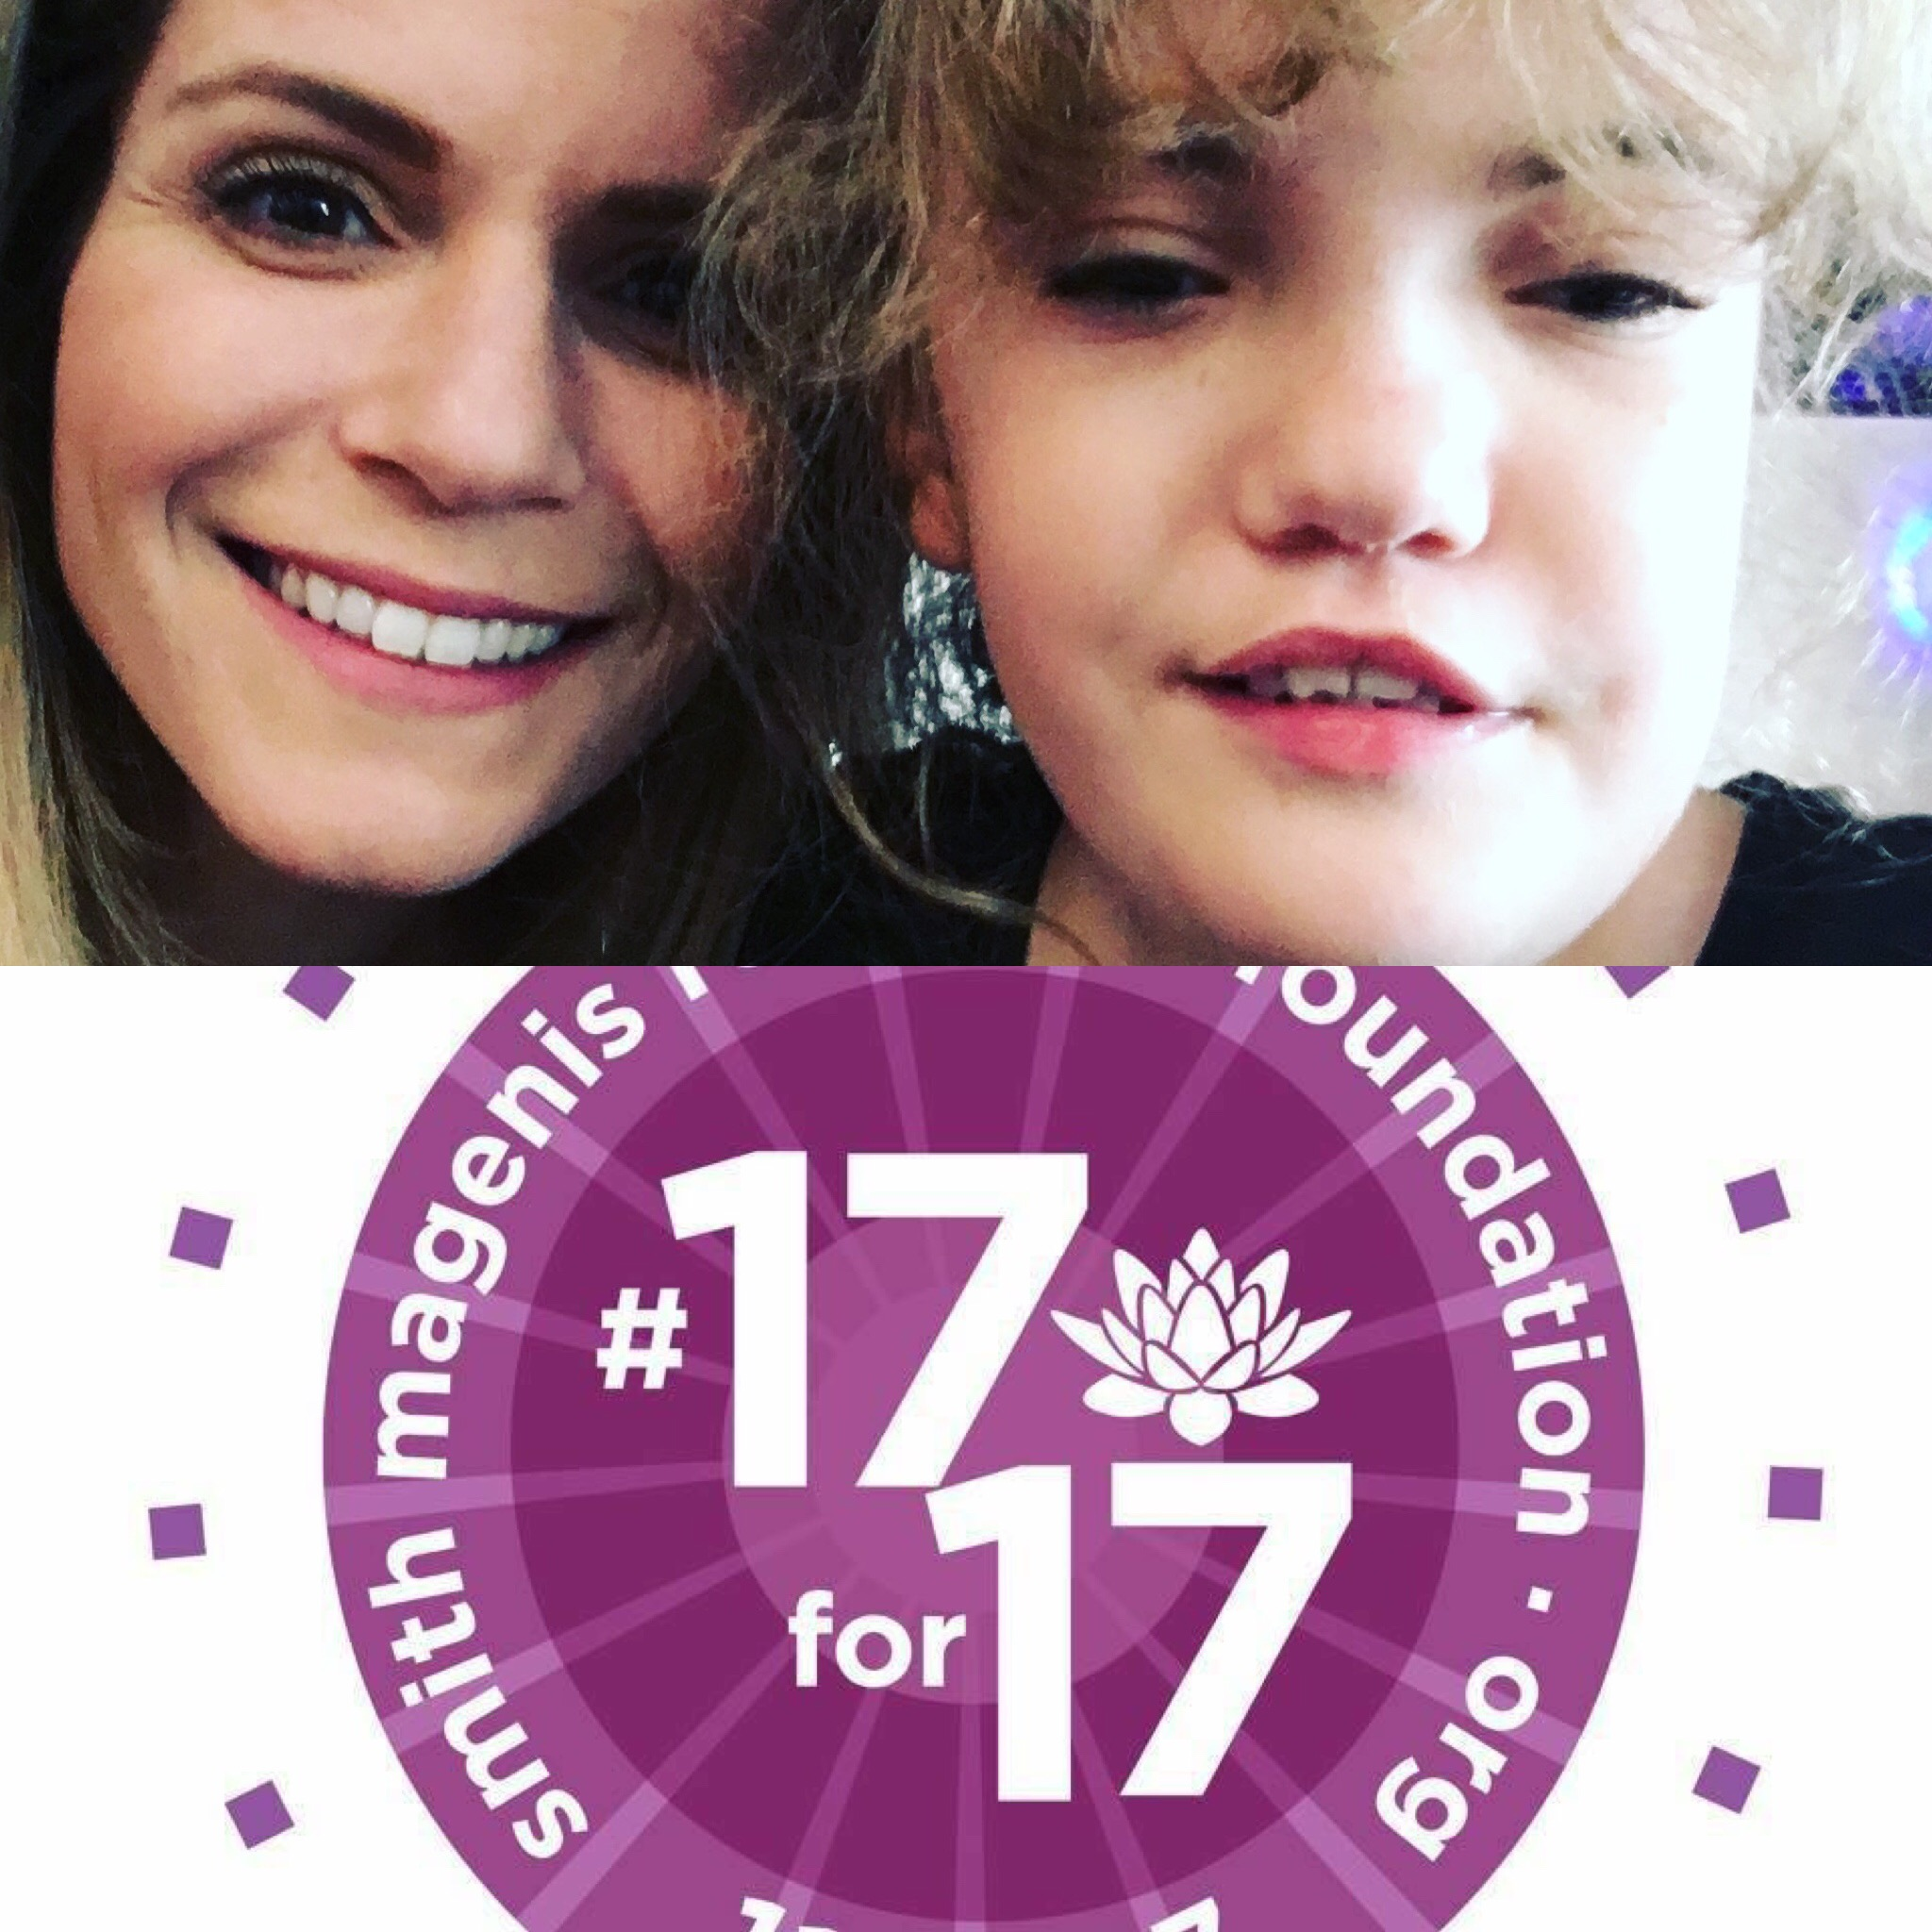 The author and her daughter with the SMS foundation's 17 for 17 logo